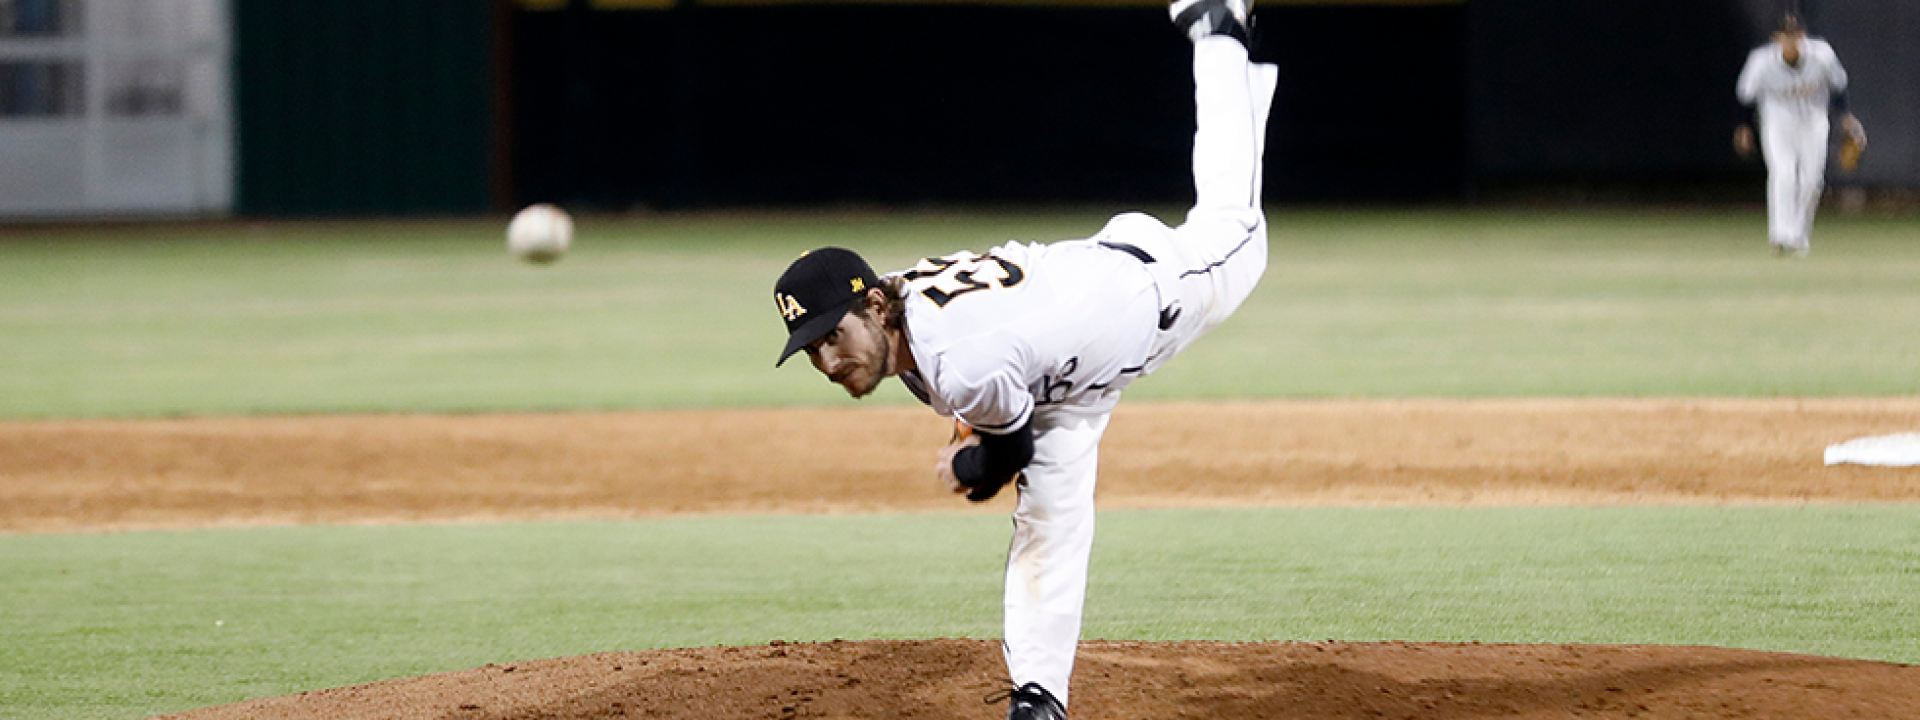 Image of a Cal State LA pitcher on the mound, mid-throw.